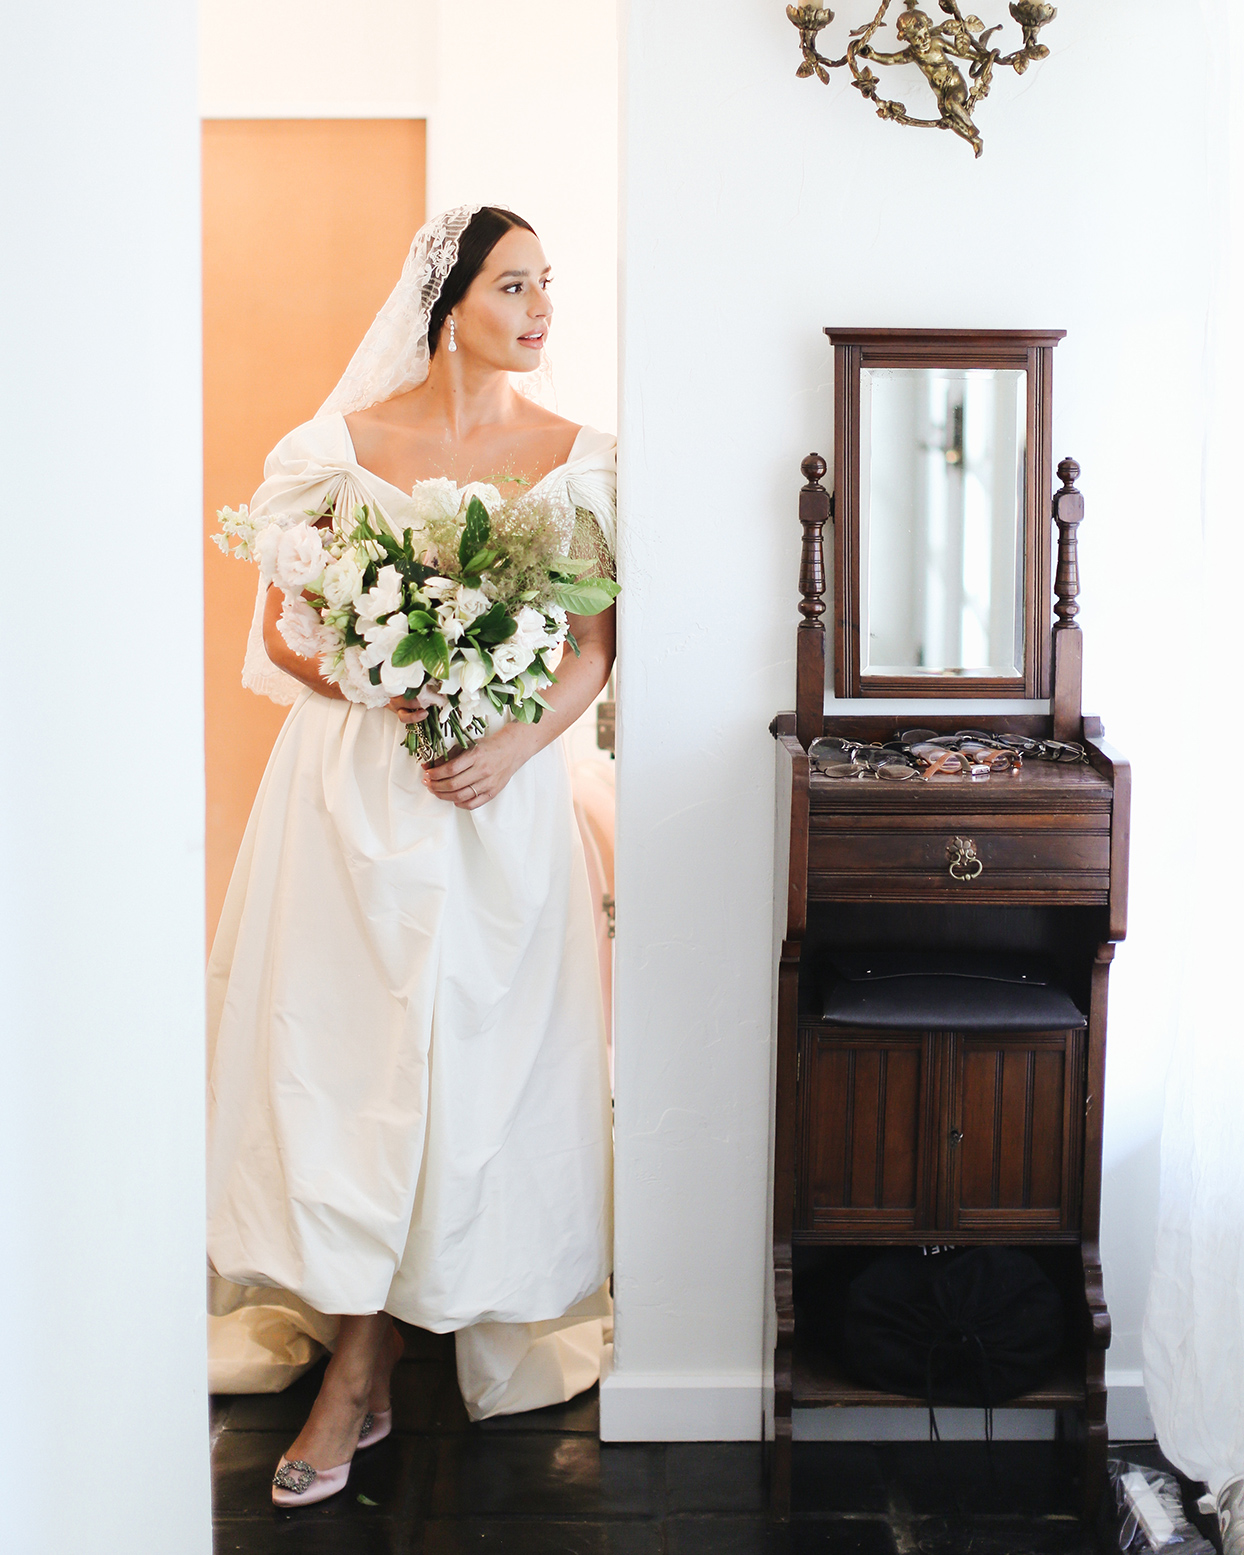 pia davide wedding bride dress standing in doorway